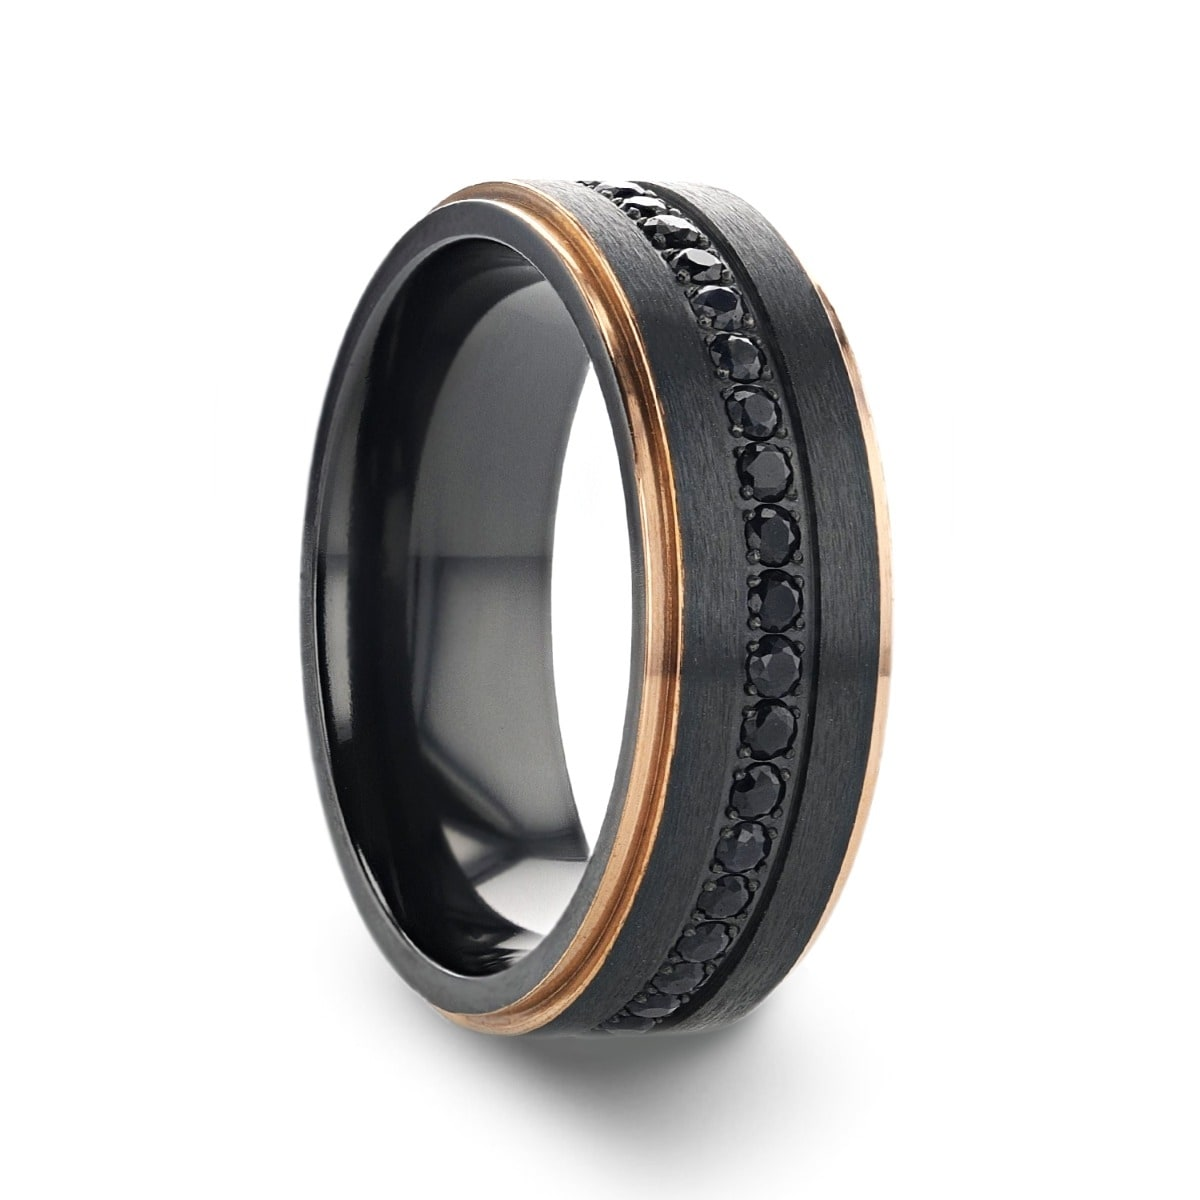 Shop Thorsten Astro Titanium Rings For Men Flat Brushed Ring With Rose Gold Plated Inside And Black Sapphire Settings 8 Mm On Sale Overstock 26967091